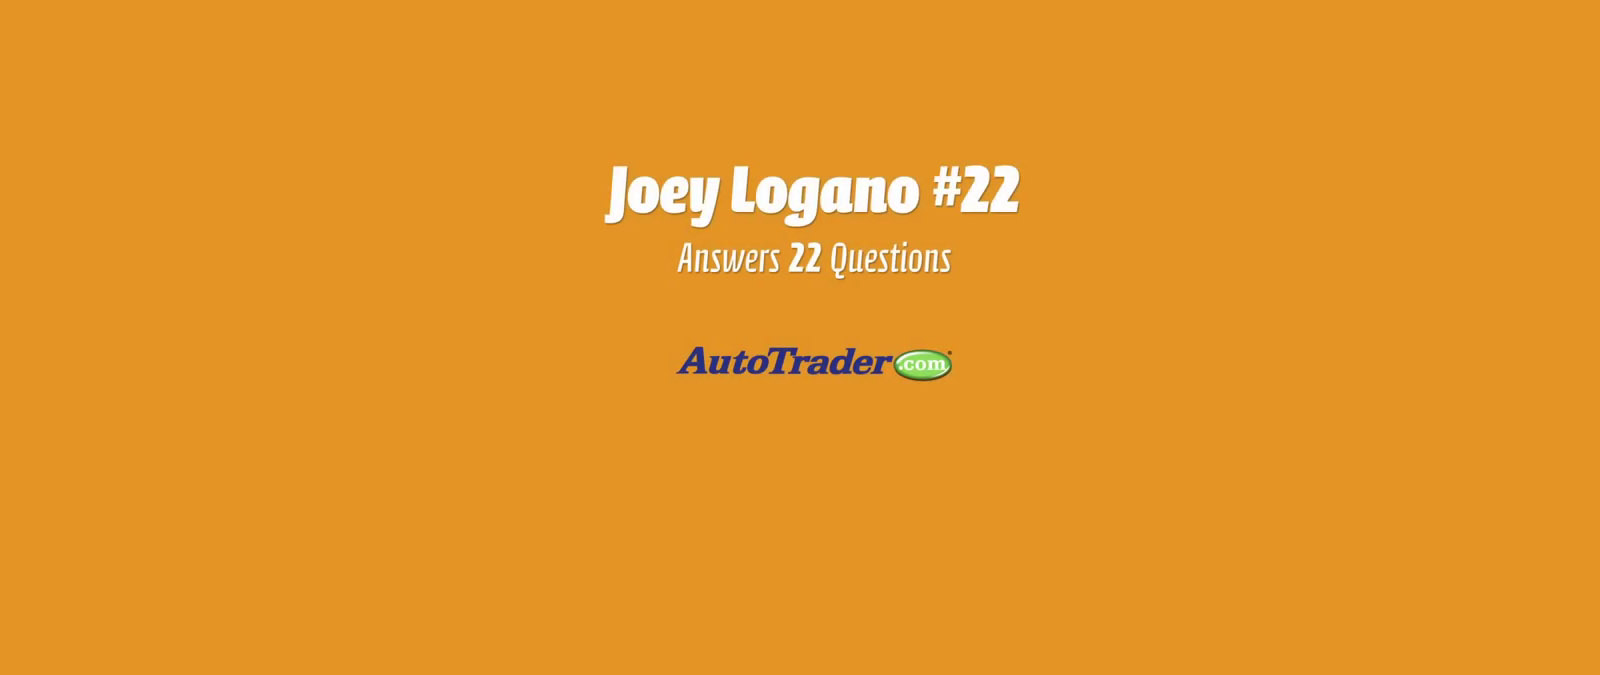 Joey Logano Answers 22 Questions